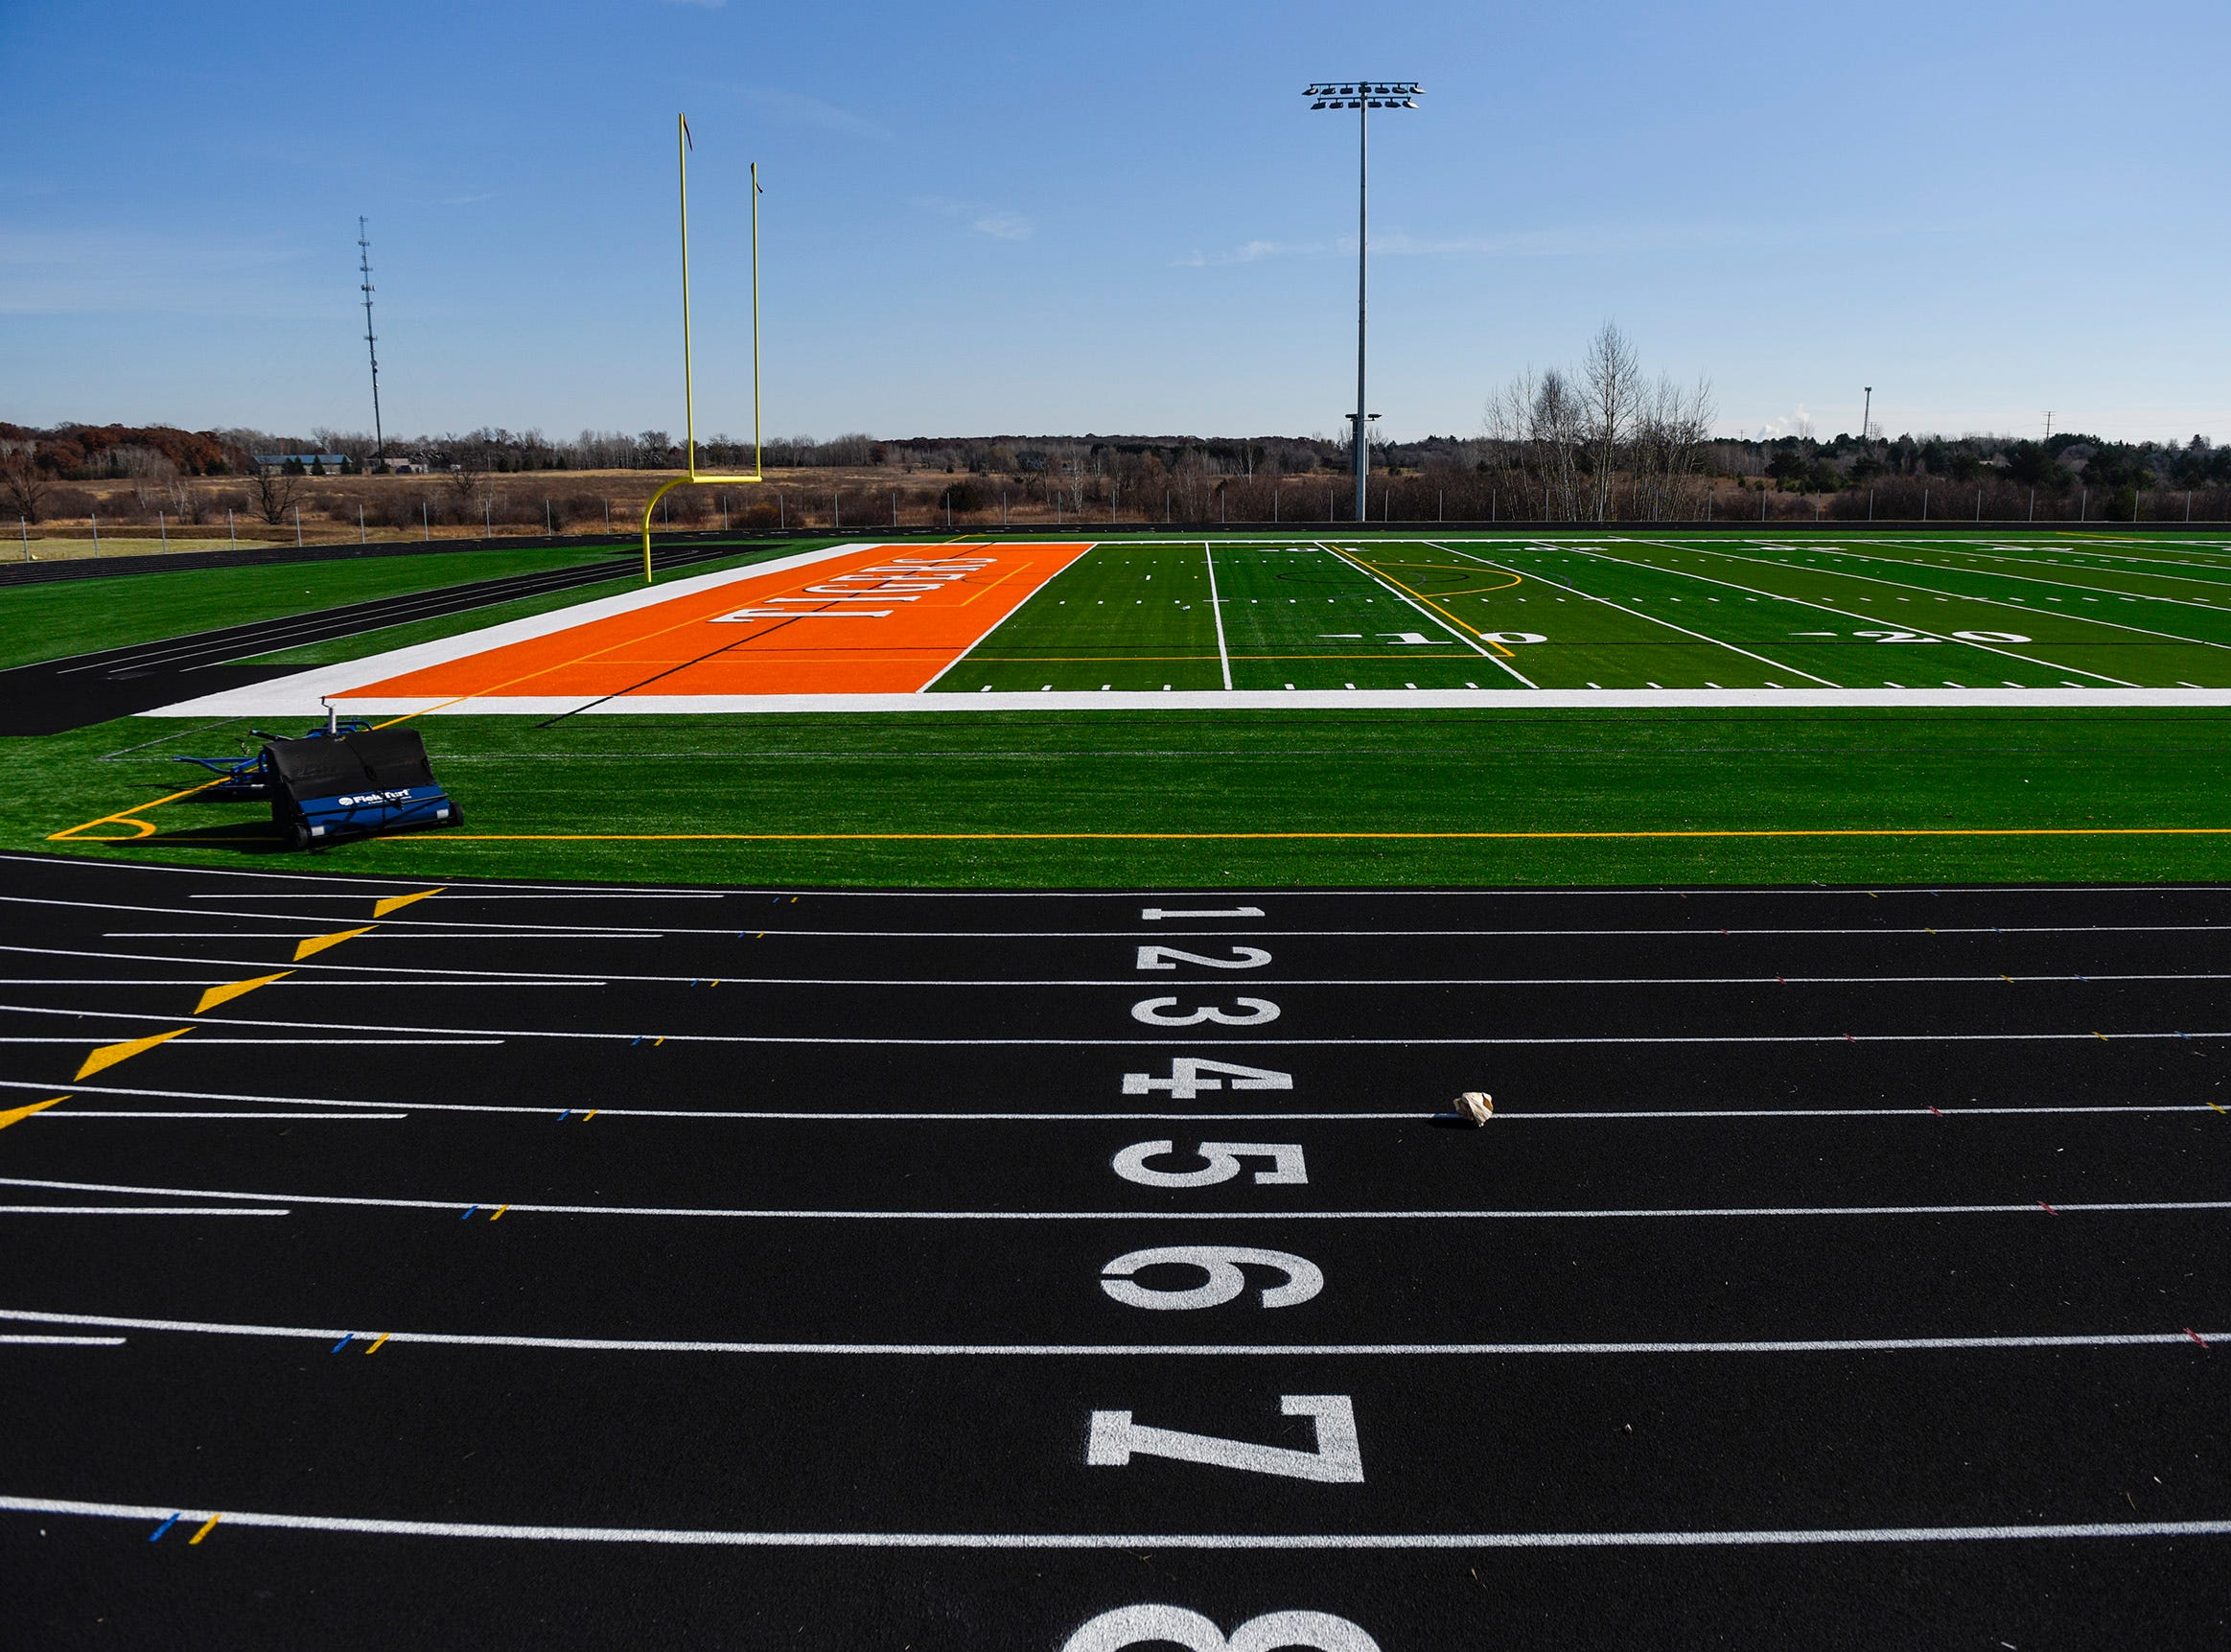 The track and field turf are installed shown Thursday, Nov. 1, at the new Tech High School.